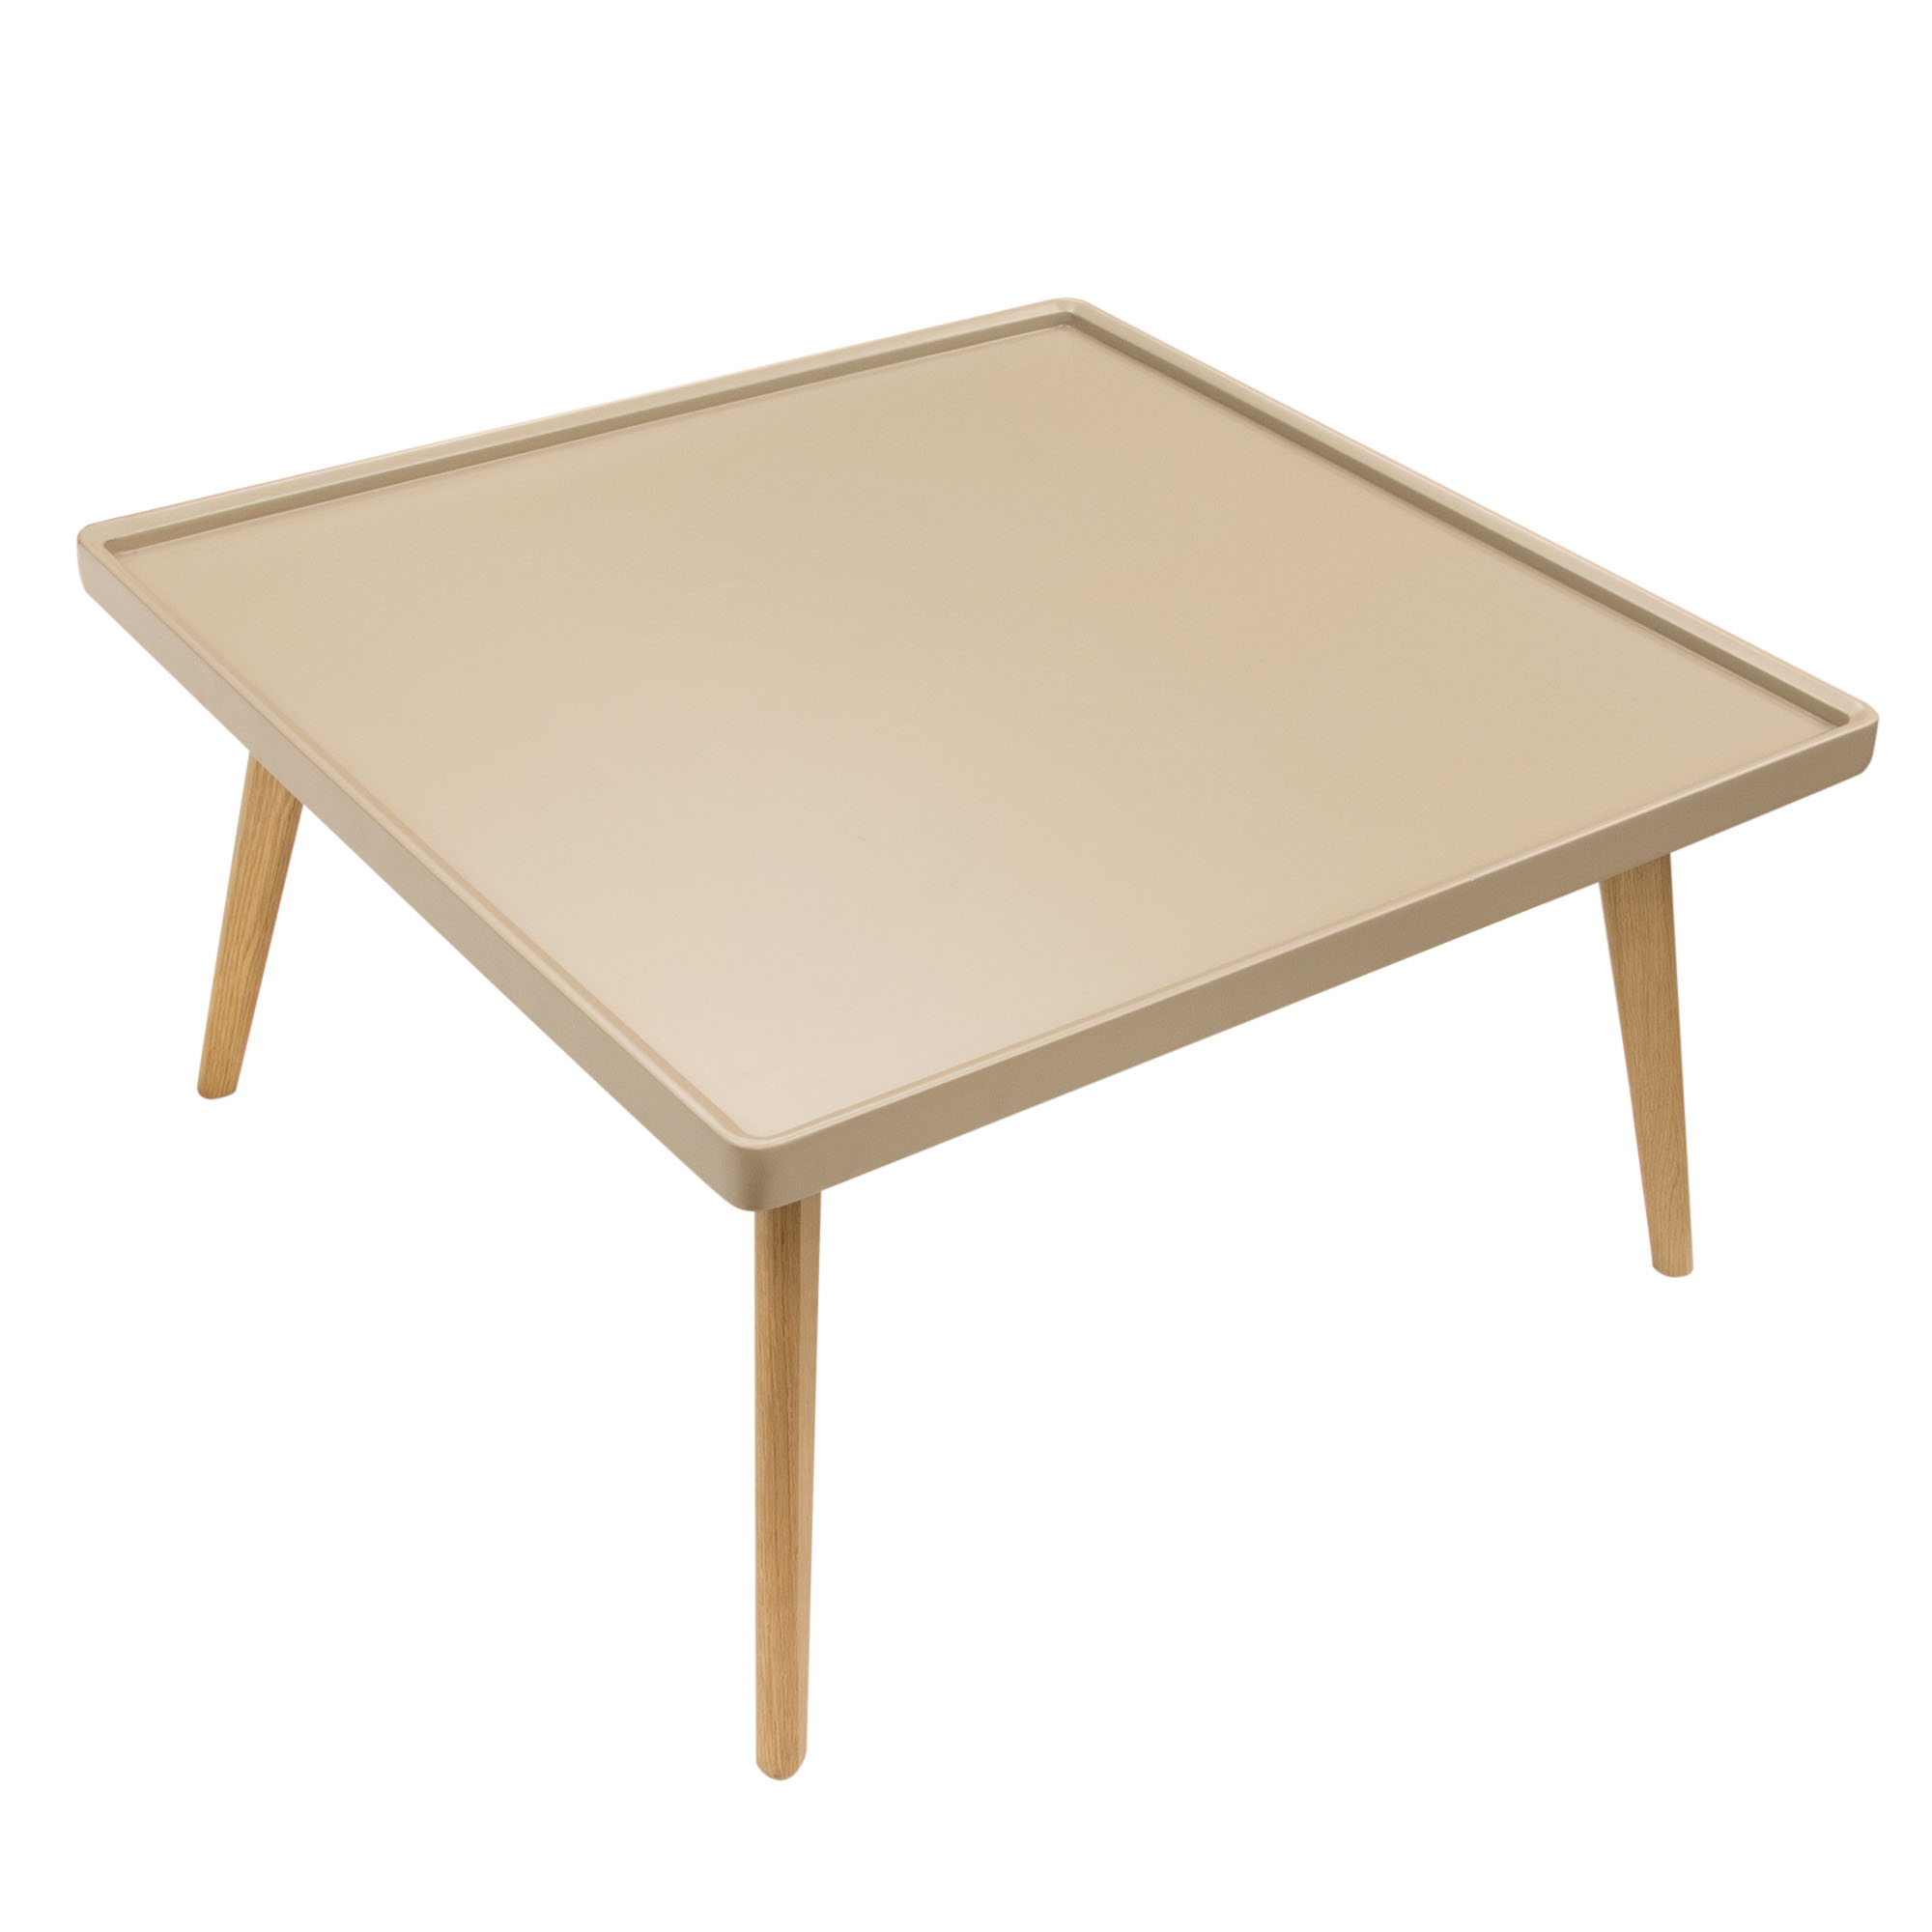 DS Coffee Table Cafe Tray Edge Taupe – POP n Décor